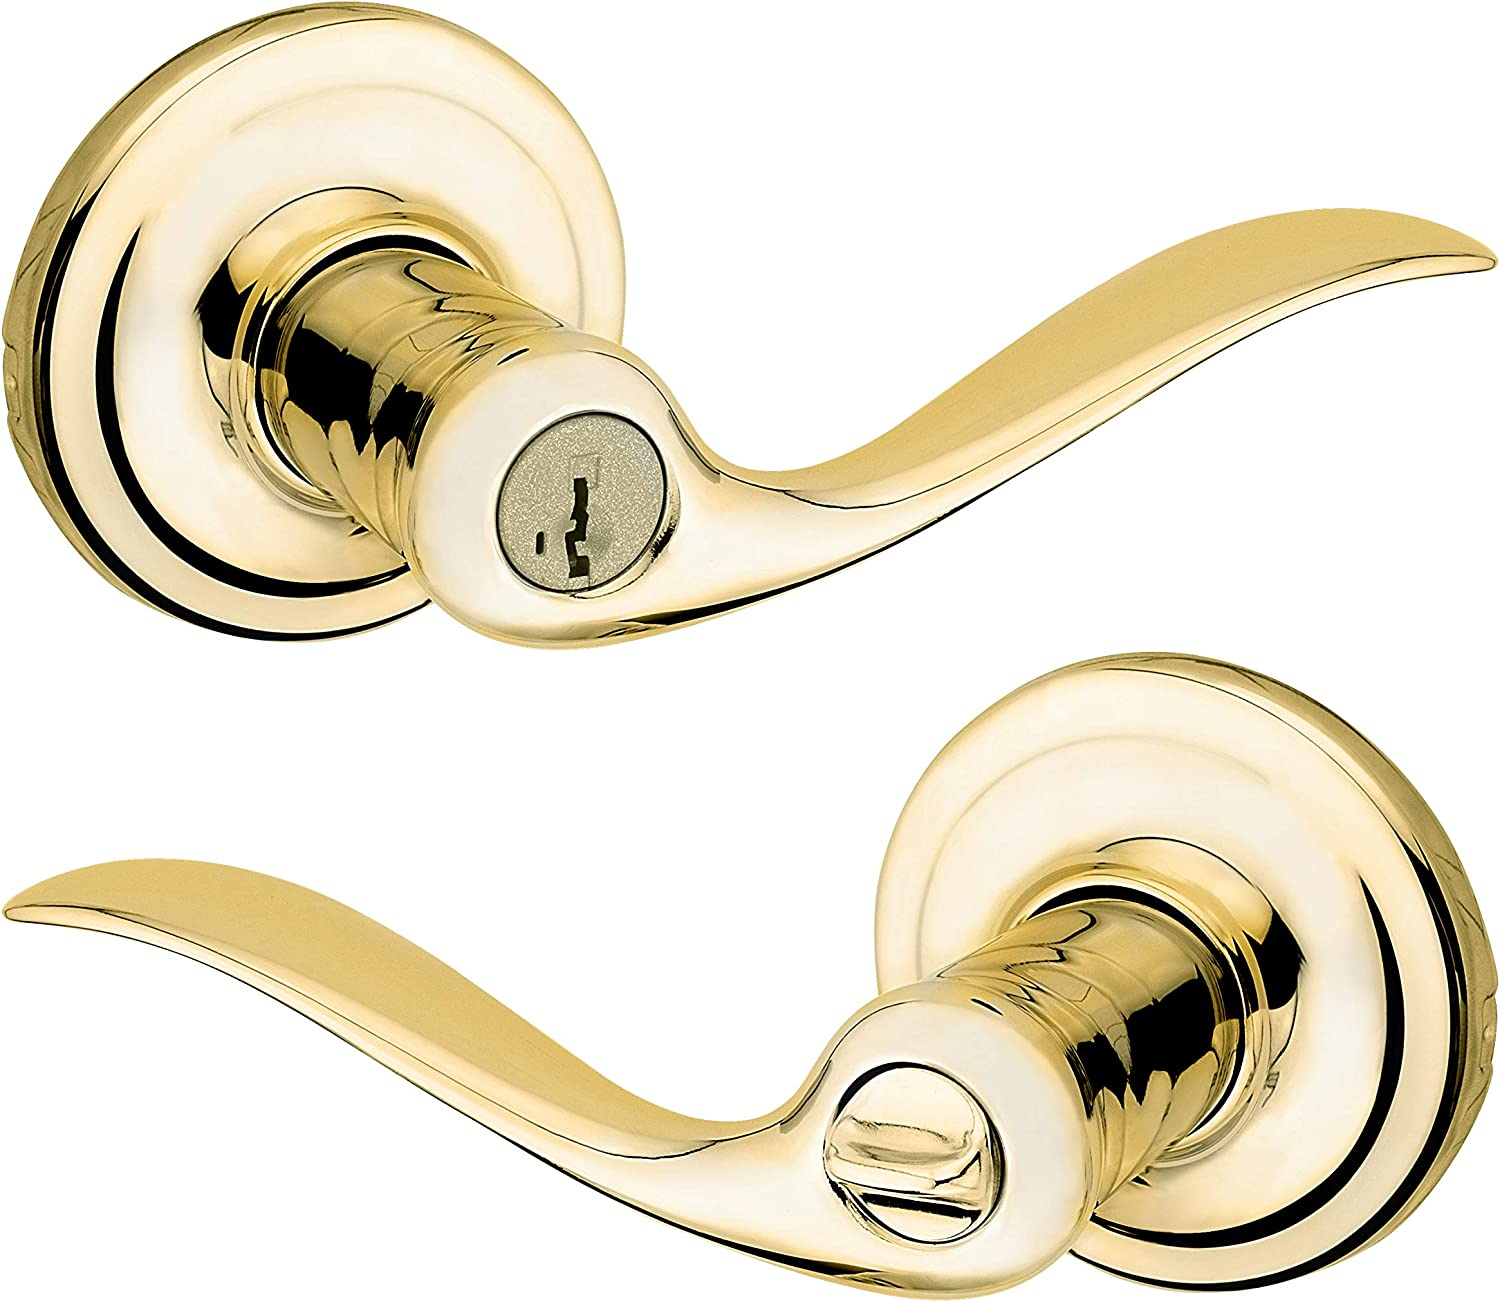 Tustin Keyed Entry Lever with Microban Antimicrobial Protection featuring SmartKey Security in Polished Brass